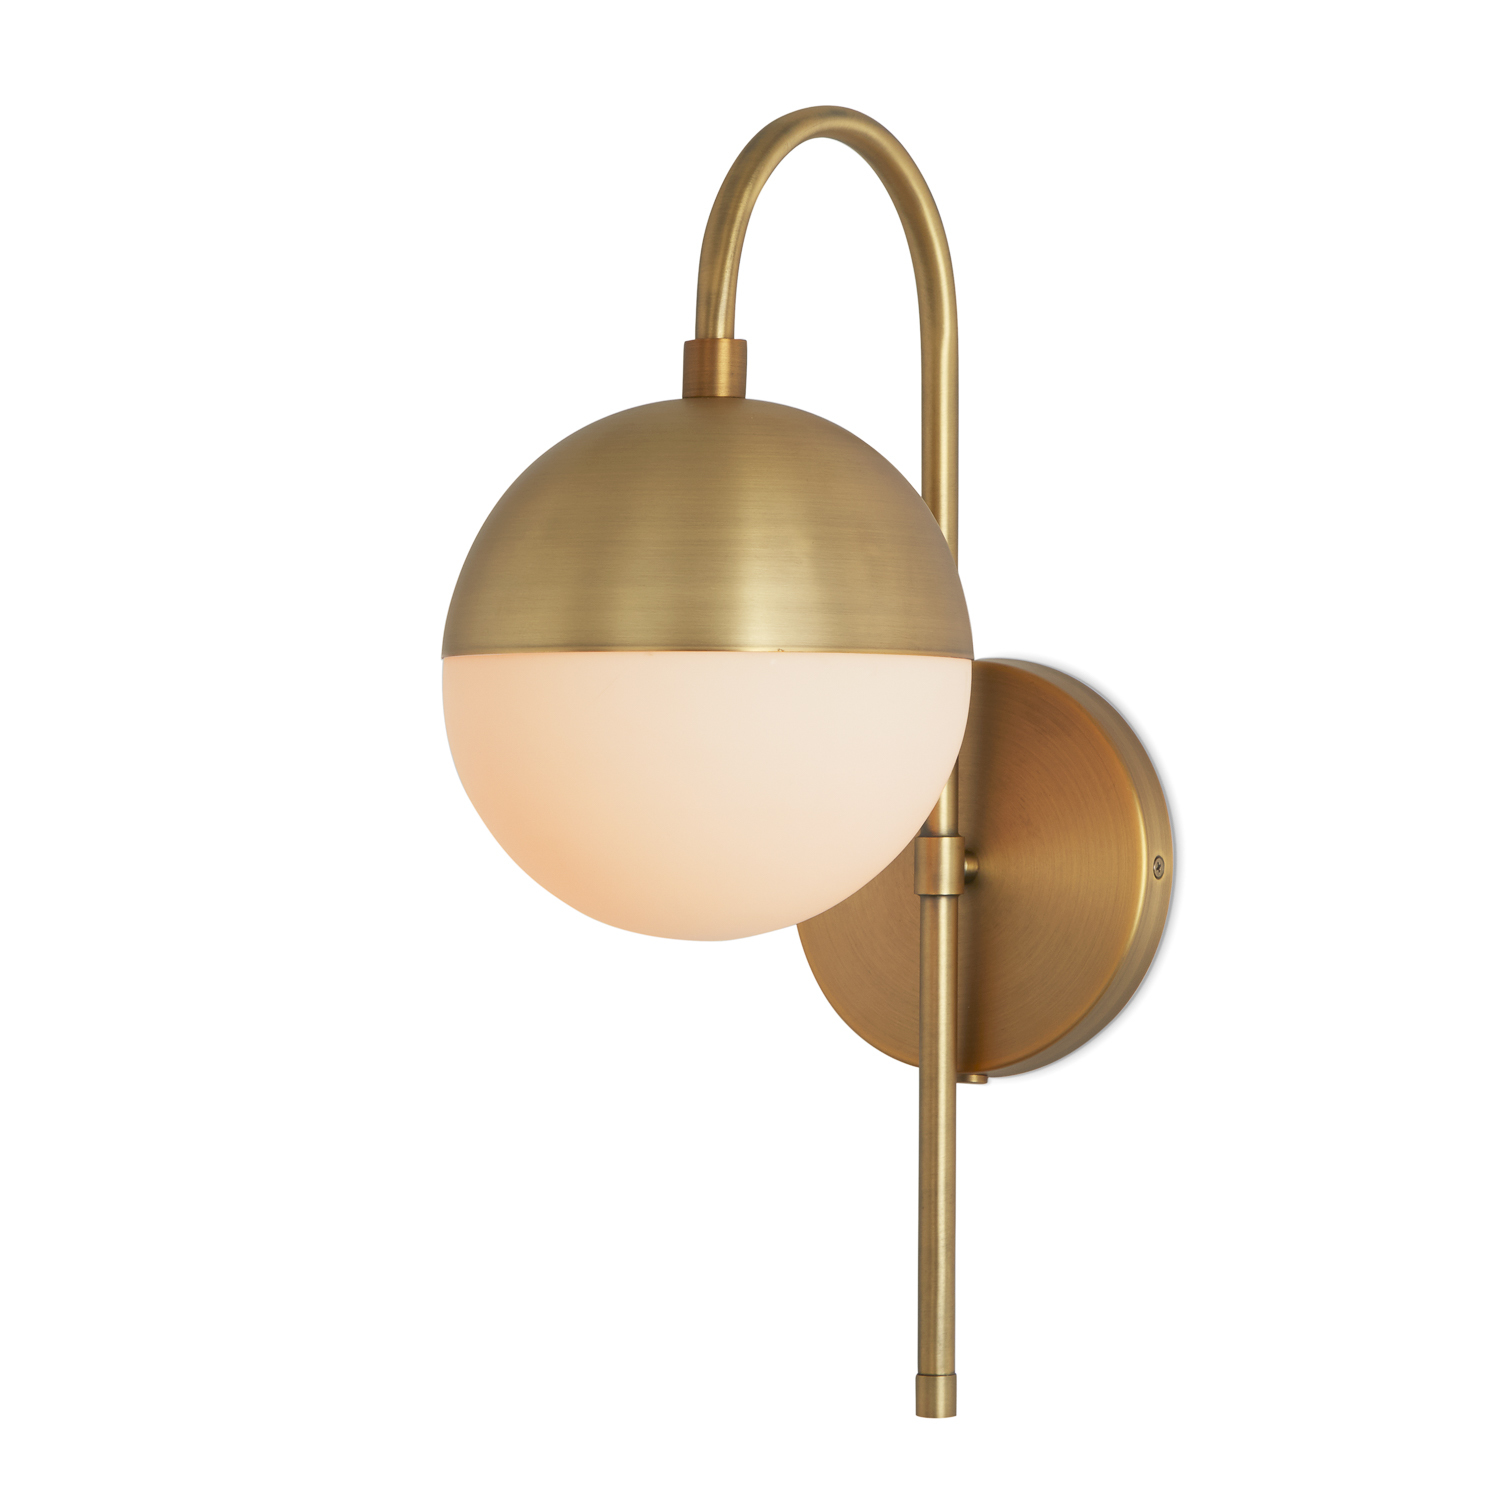 Drawstring Wall Lights : Lights.com Wall Lights Powell Wall Sconce with Hooded White Globe, Aged Brass